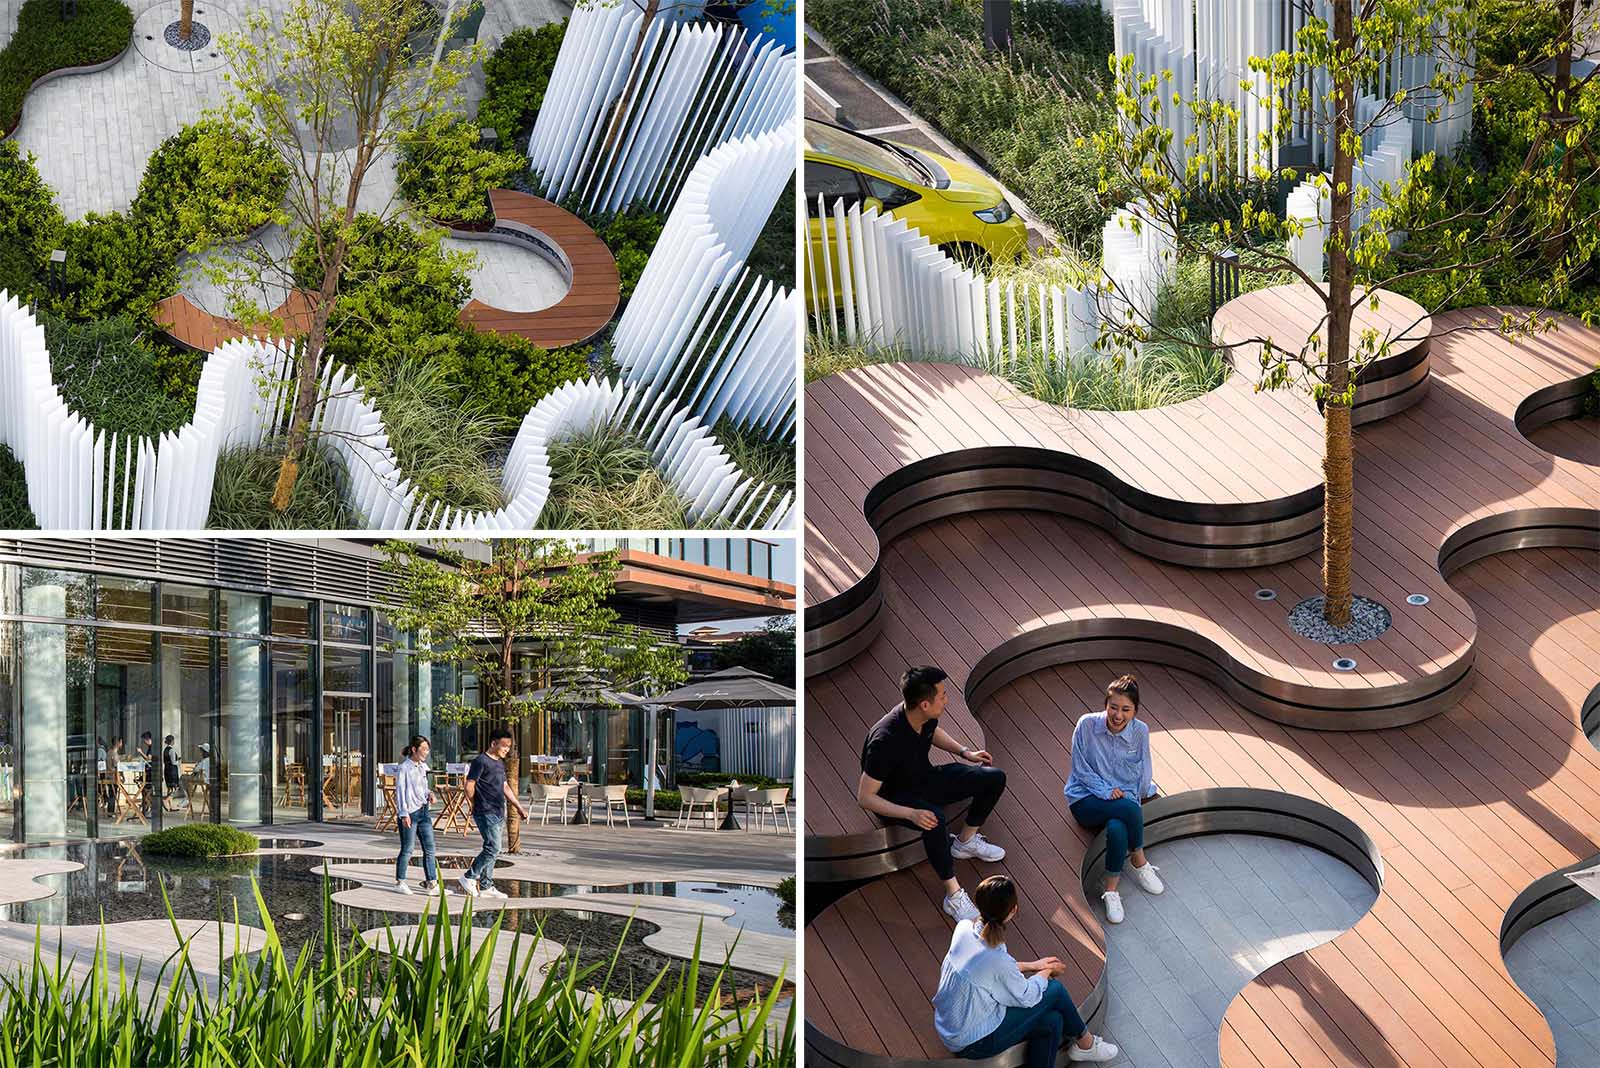 A landscaped park that includes curved tiered seating, water features, a vertical white strip fence, and outdoor lighting.